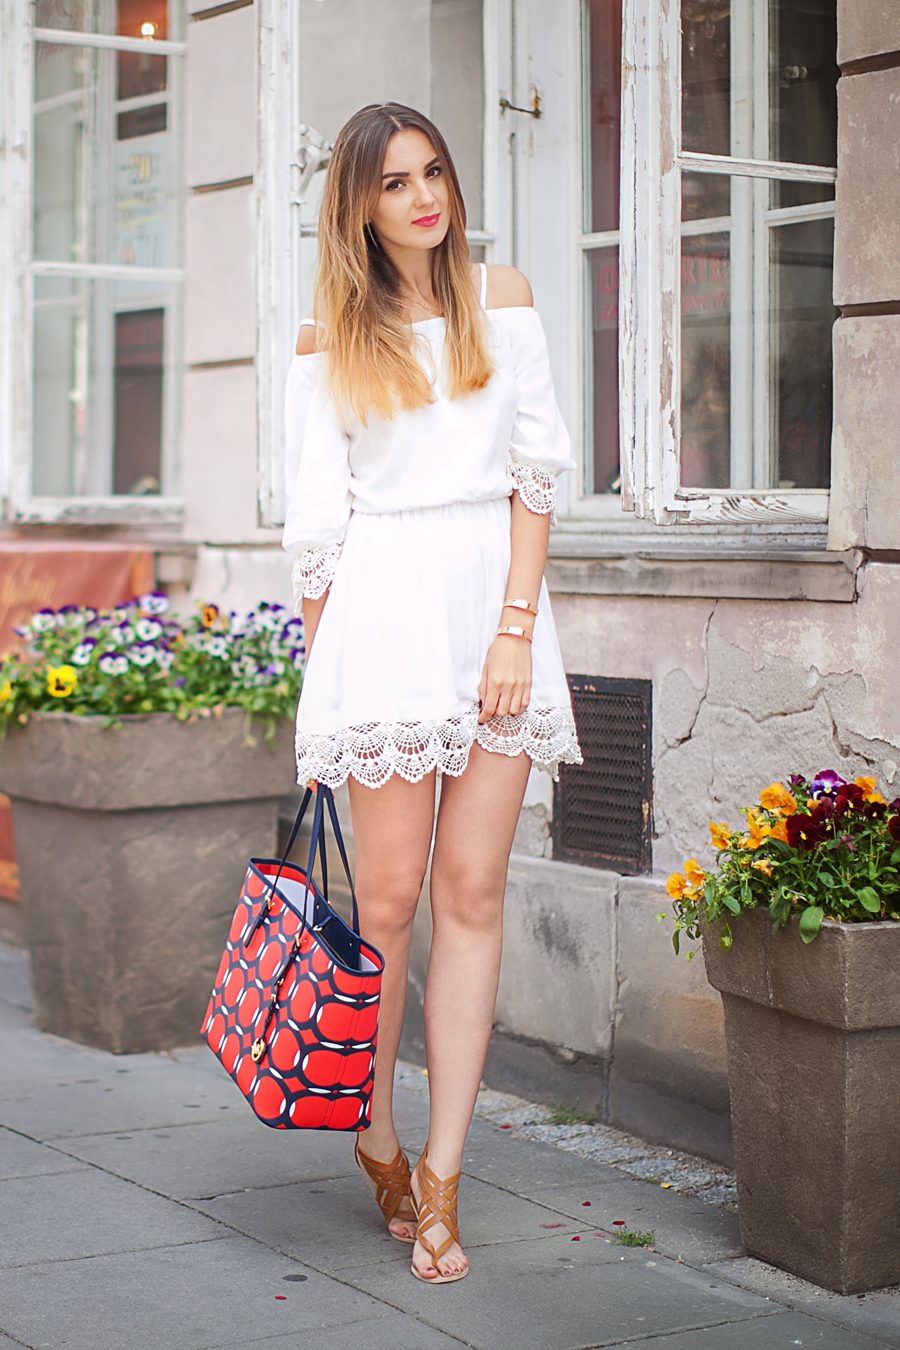 Nika Huk is wearing a white cotton dress with a crochet hem from Chicwish, sandals from Pull & Bear and a bag from Michael Kors